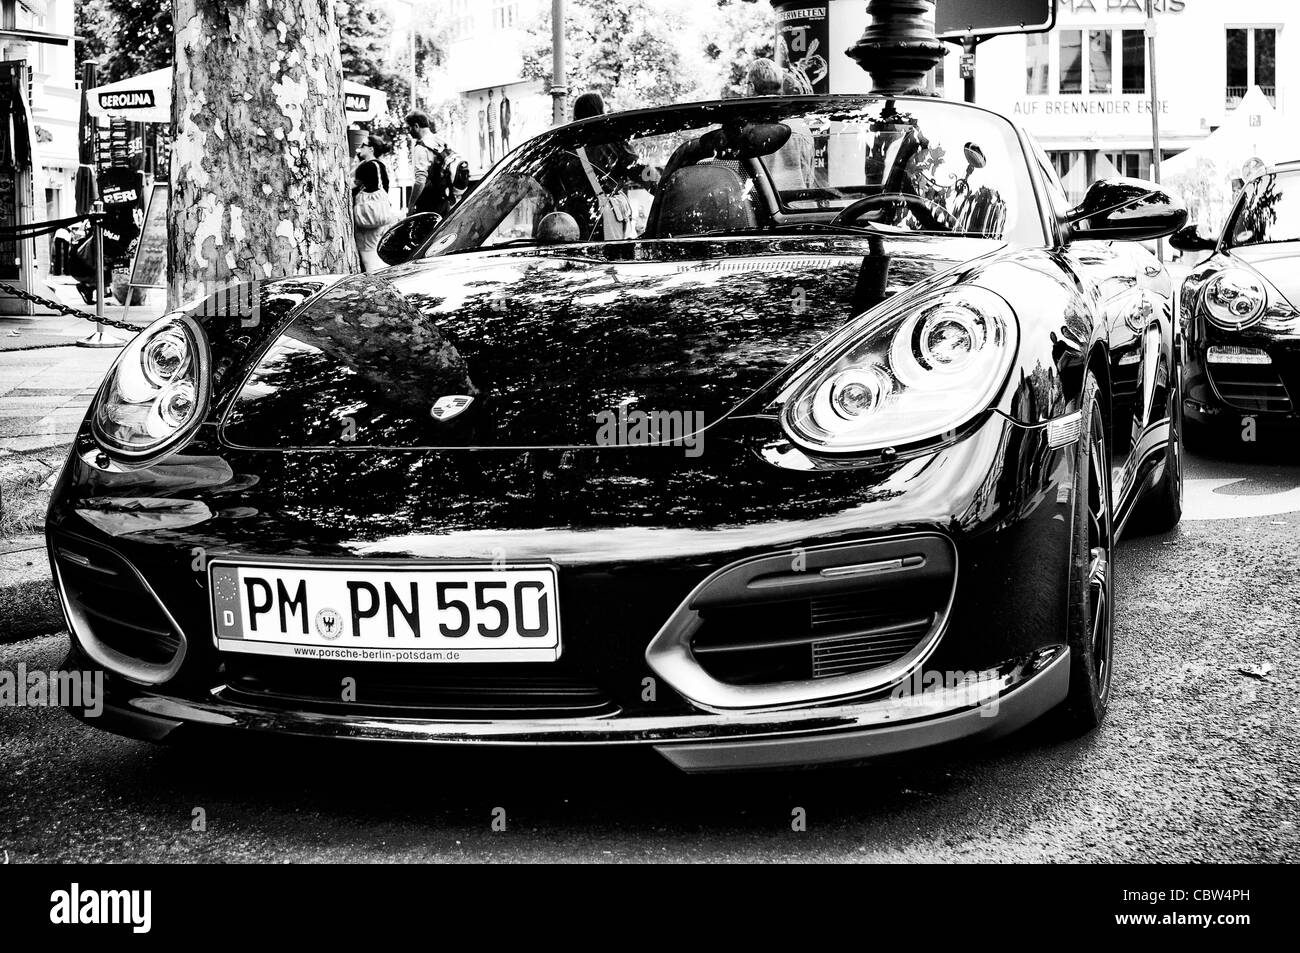 Car Porsche Cayman   Stock Image